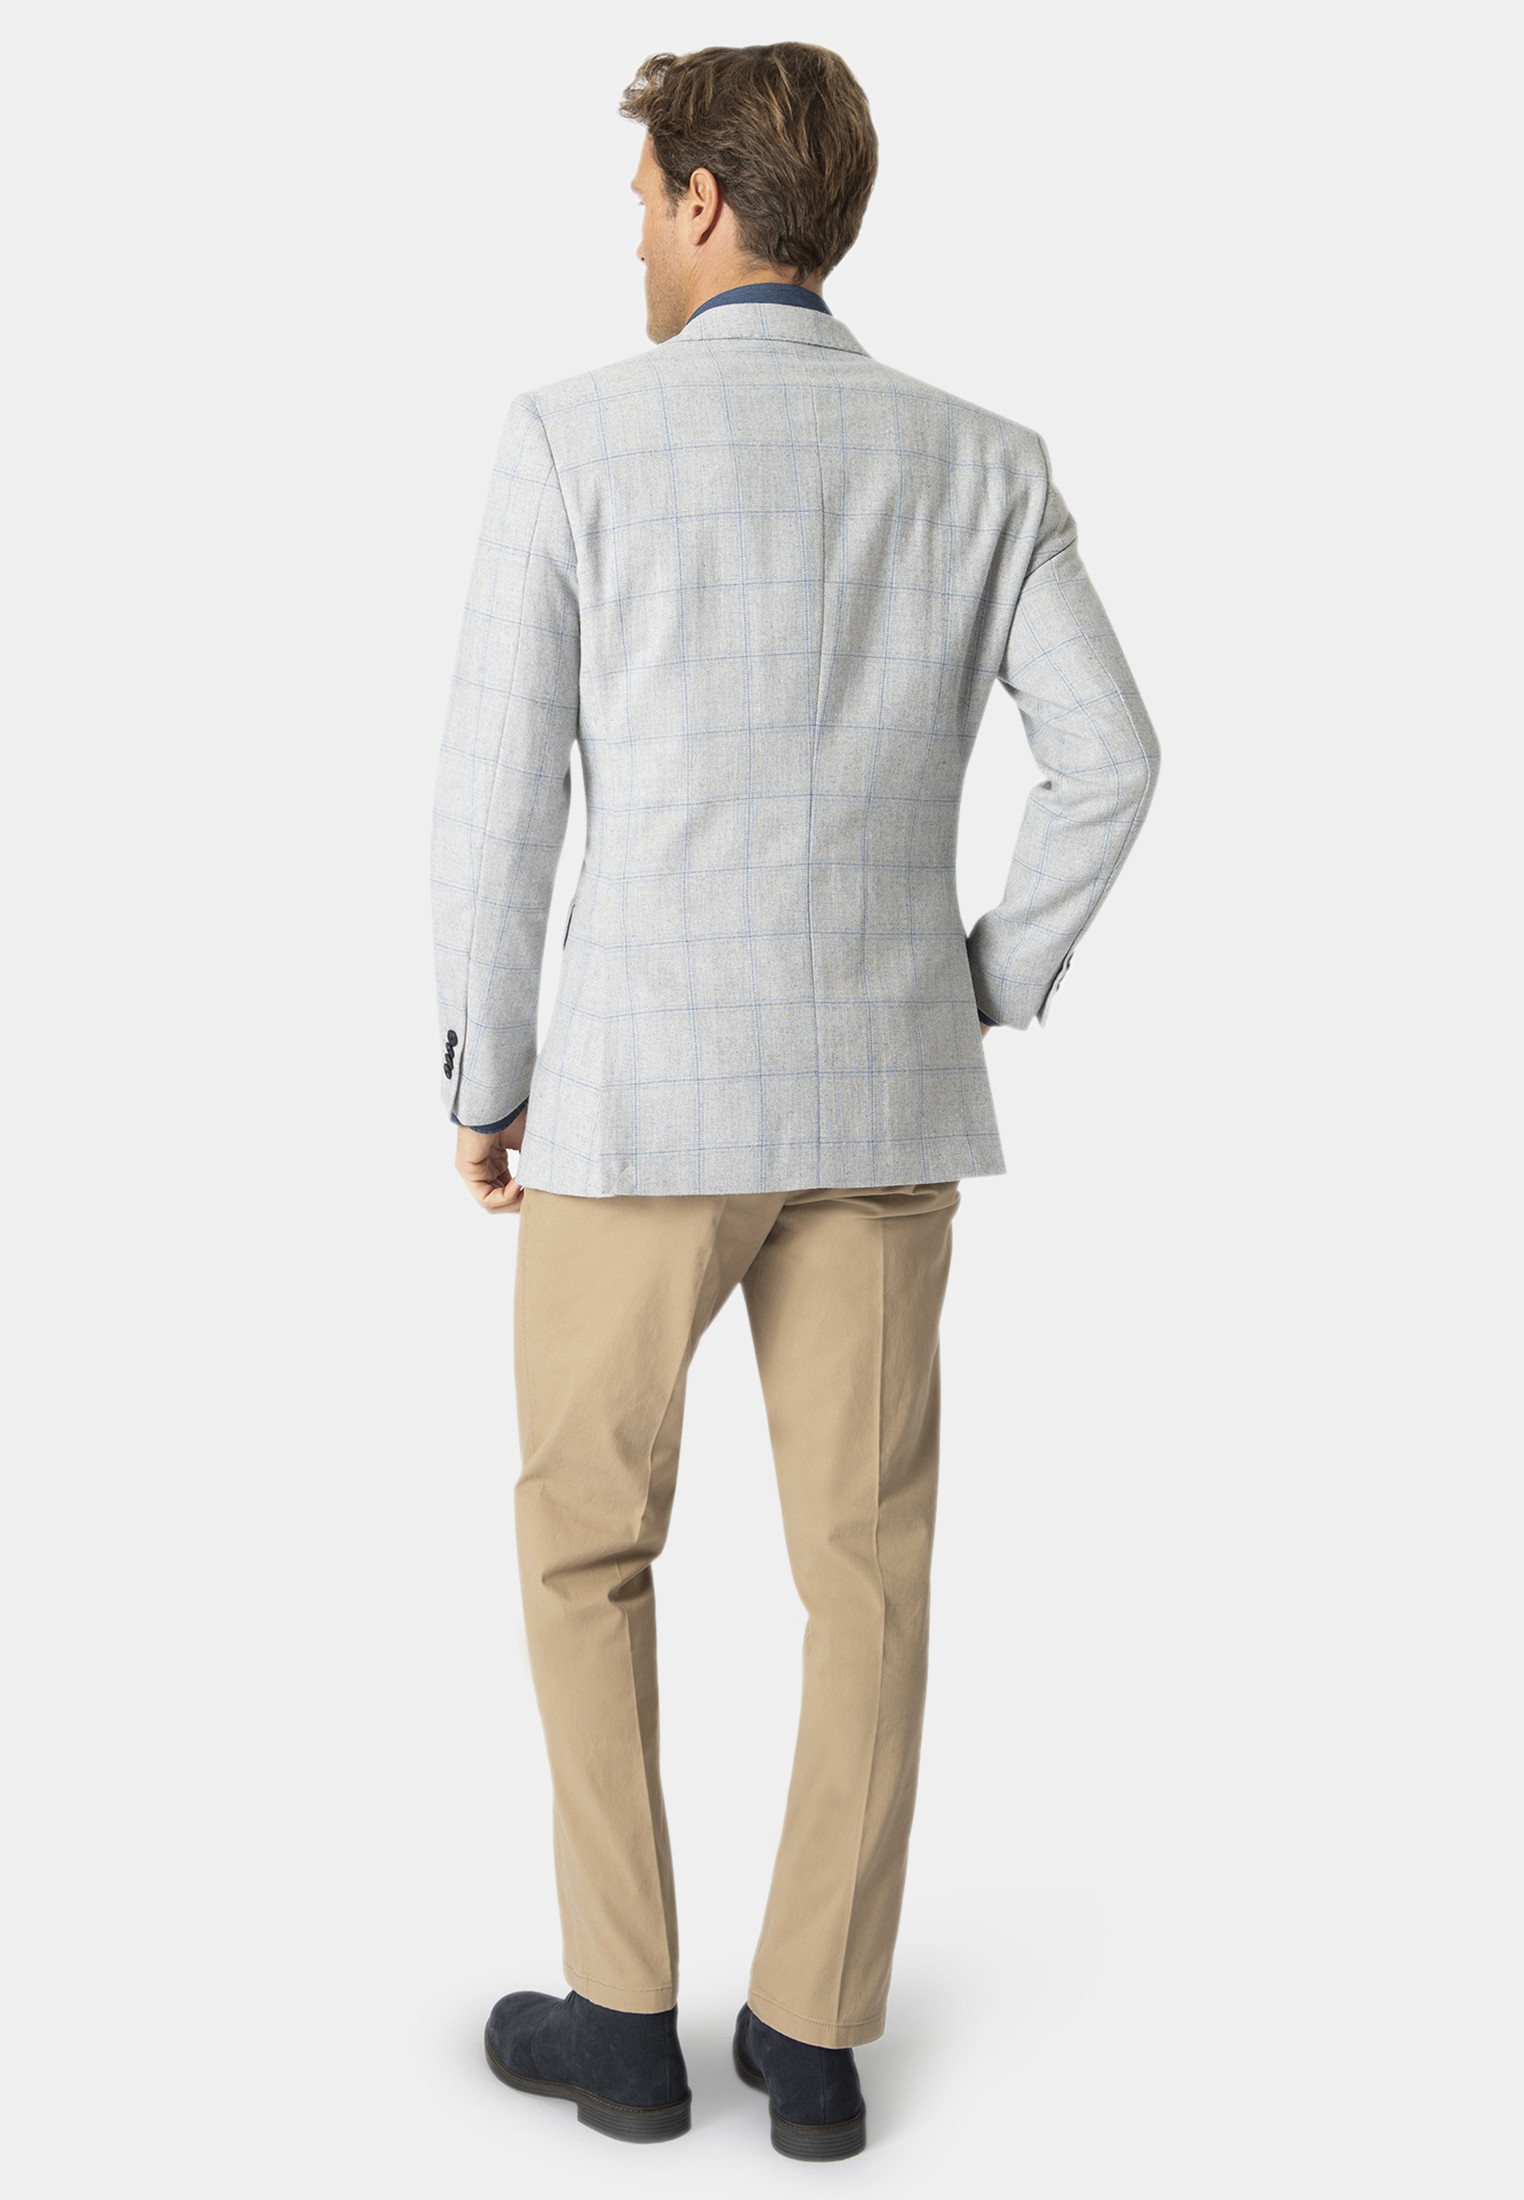 Packwood Grey With Blue Overcheck Jacket